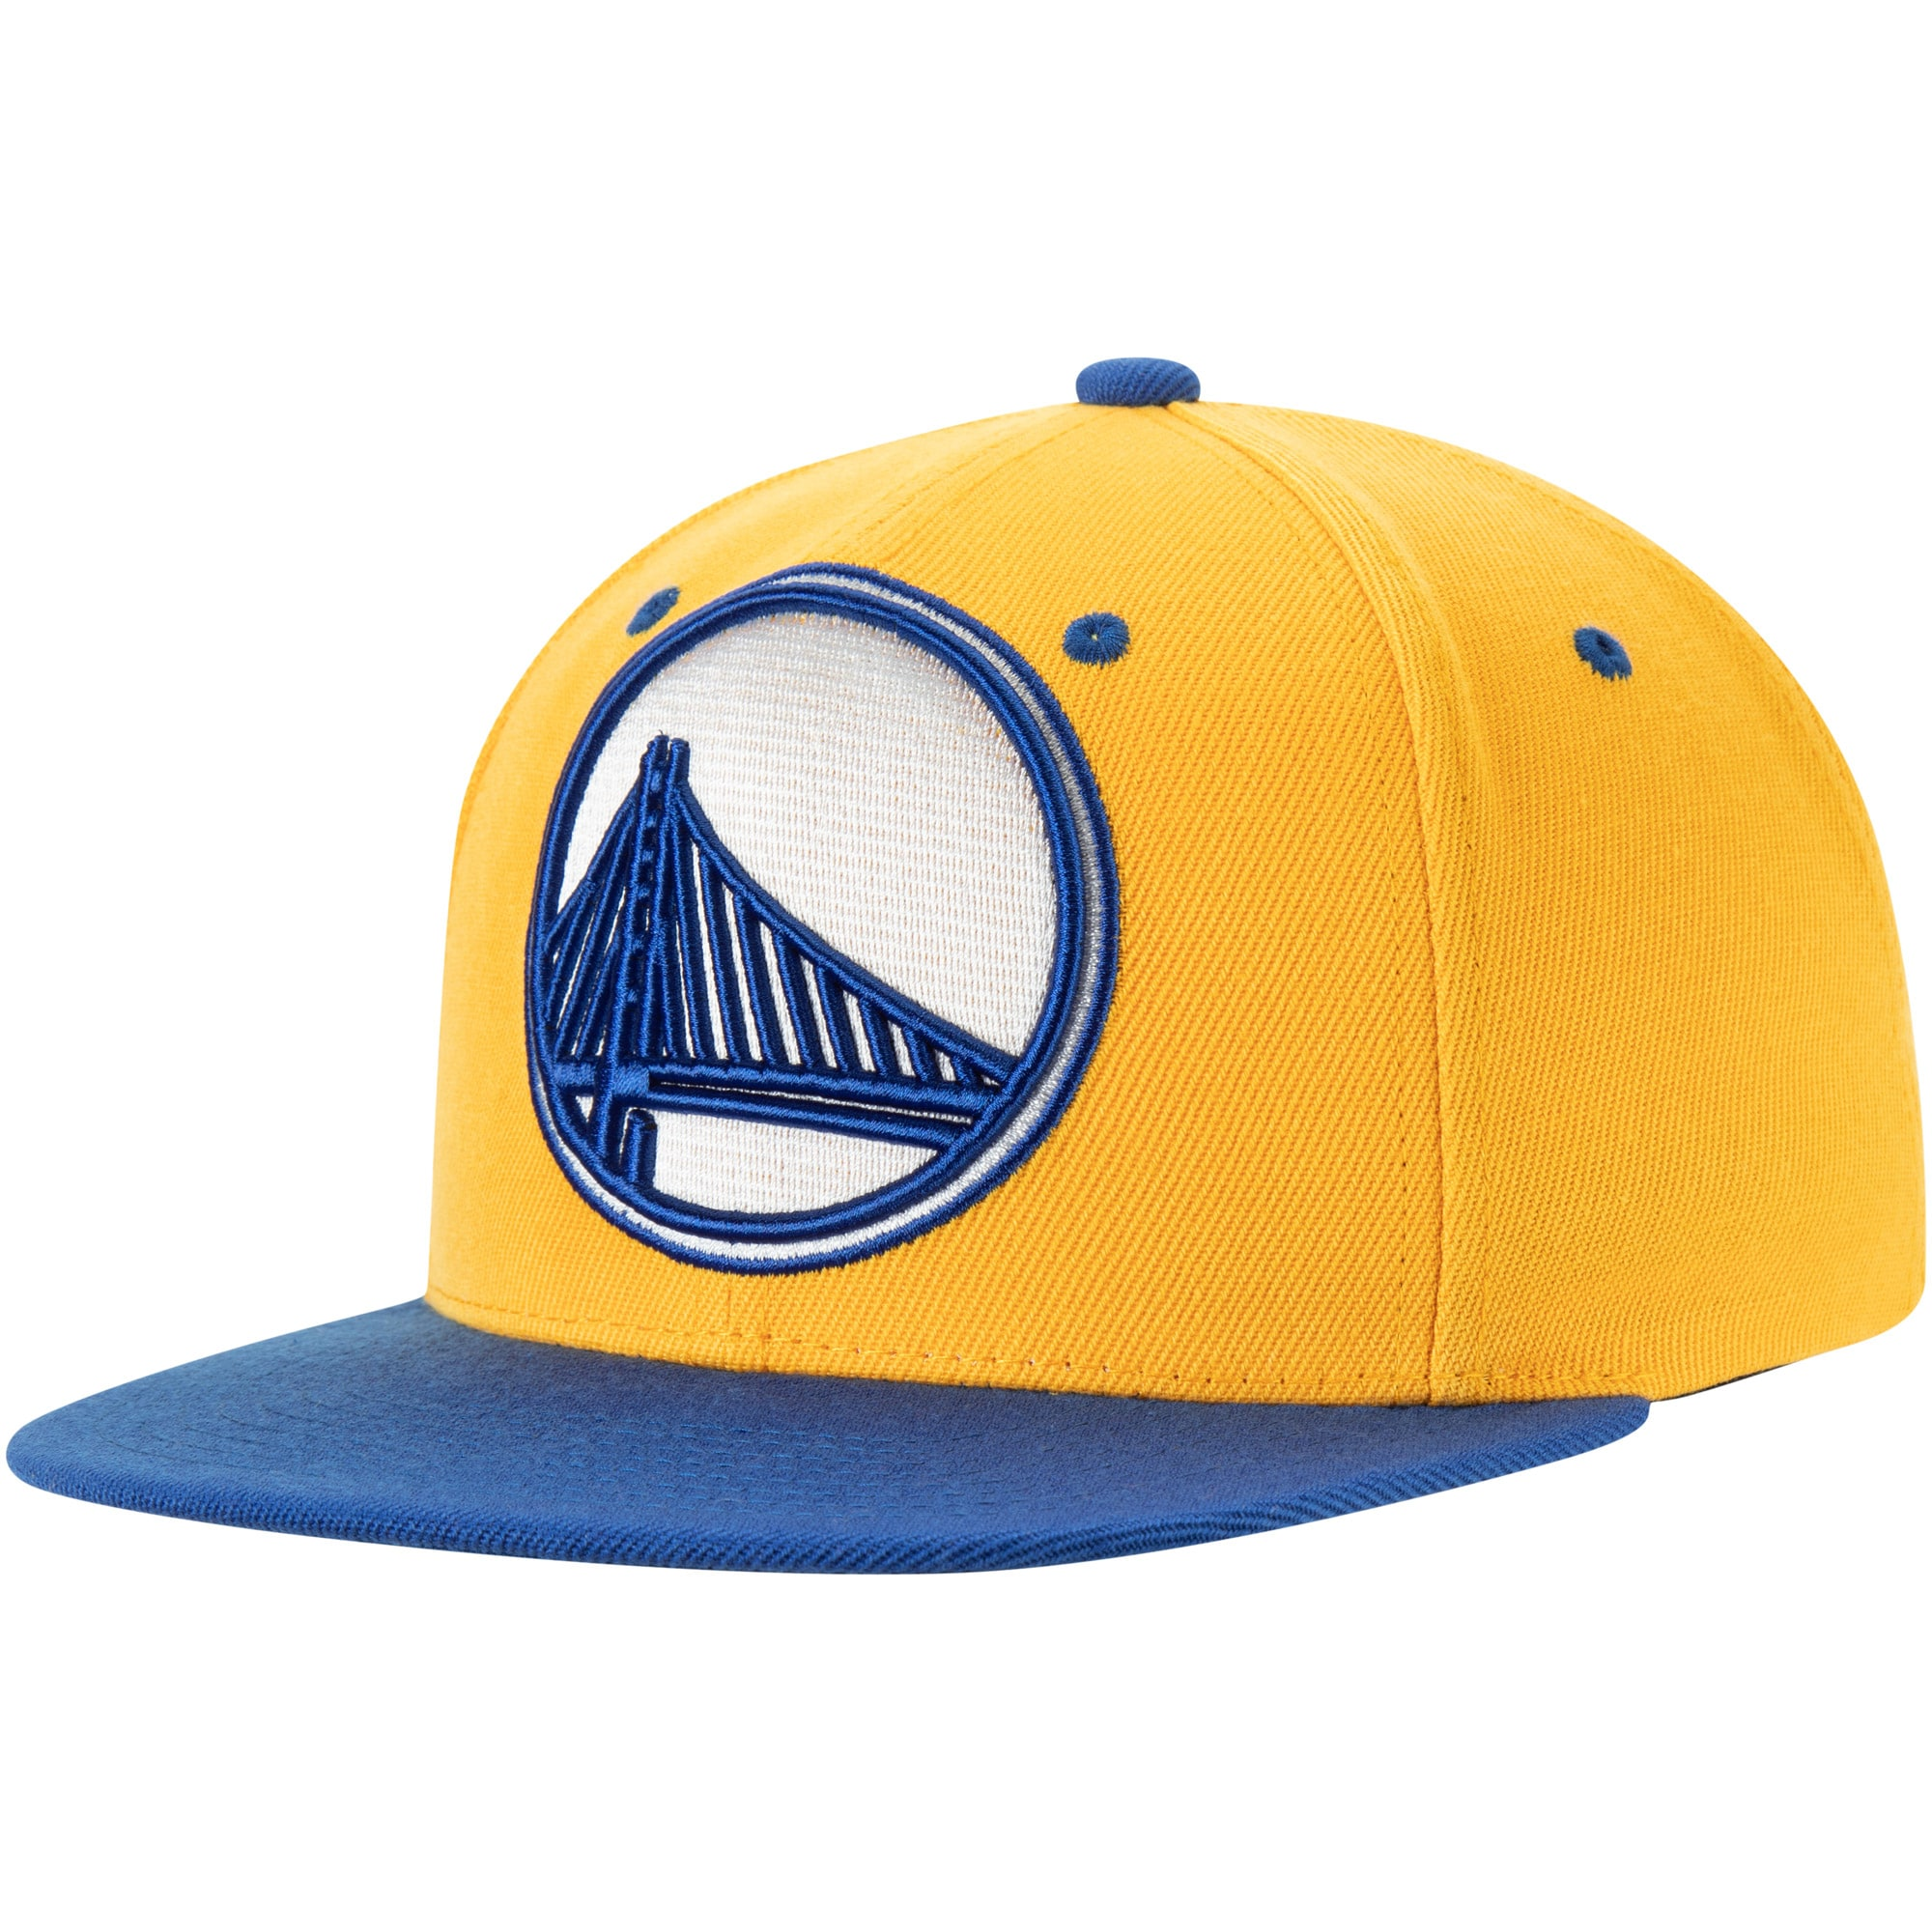 Golden State Warriors Mitchell & Ness XL Pop Team Adjustable Snapback Hat - Gold/Royal